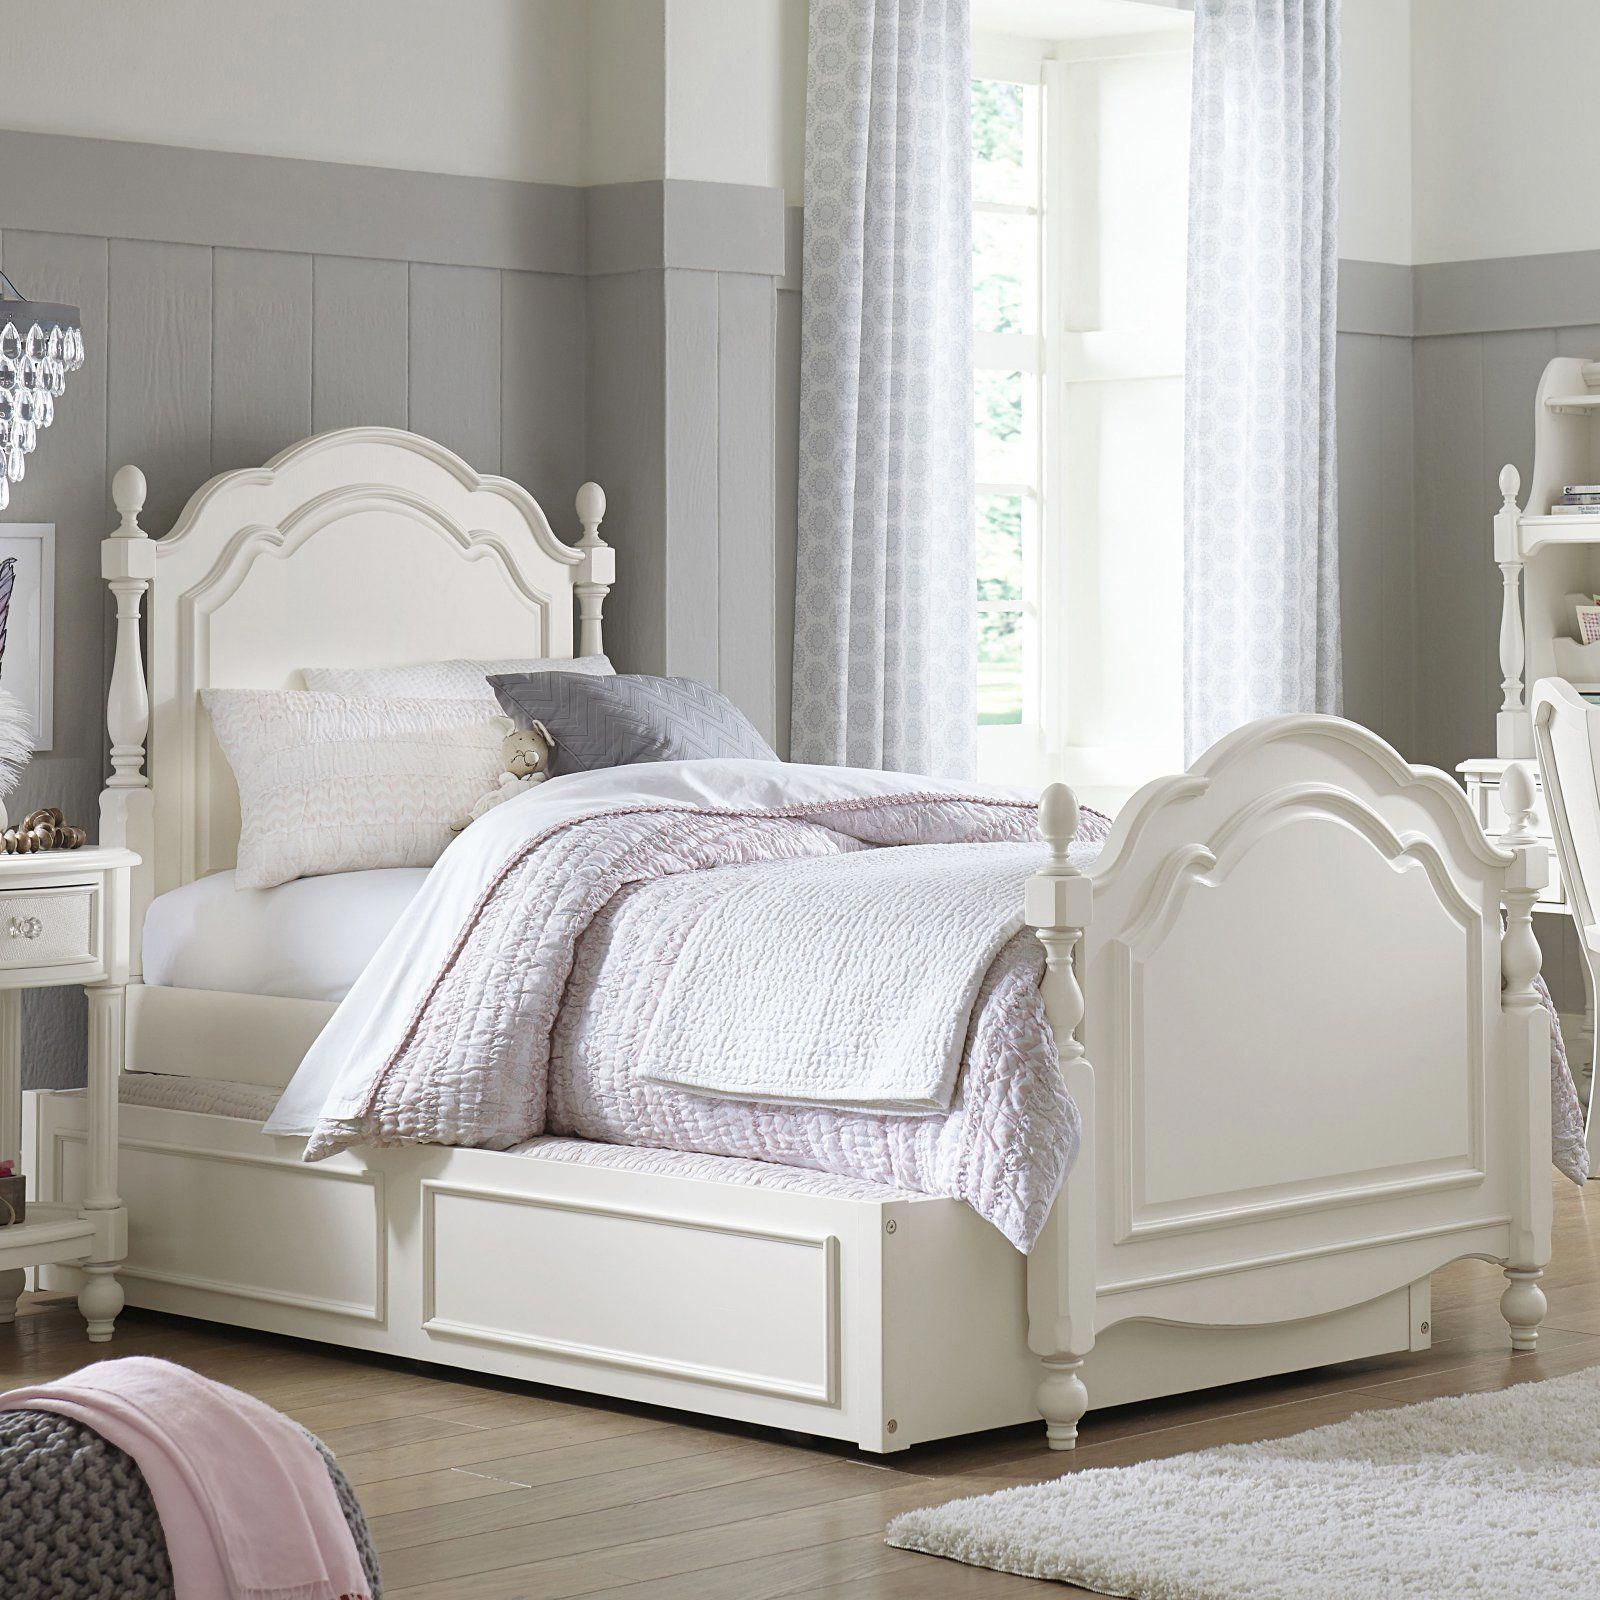 46++ Childrens bedroom furniture buy now pay later cpns 2021